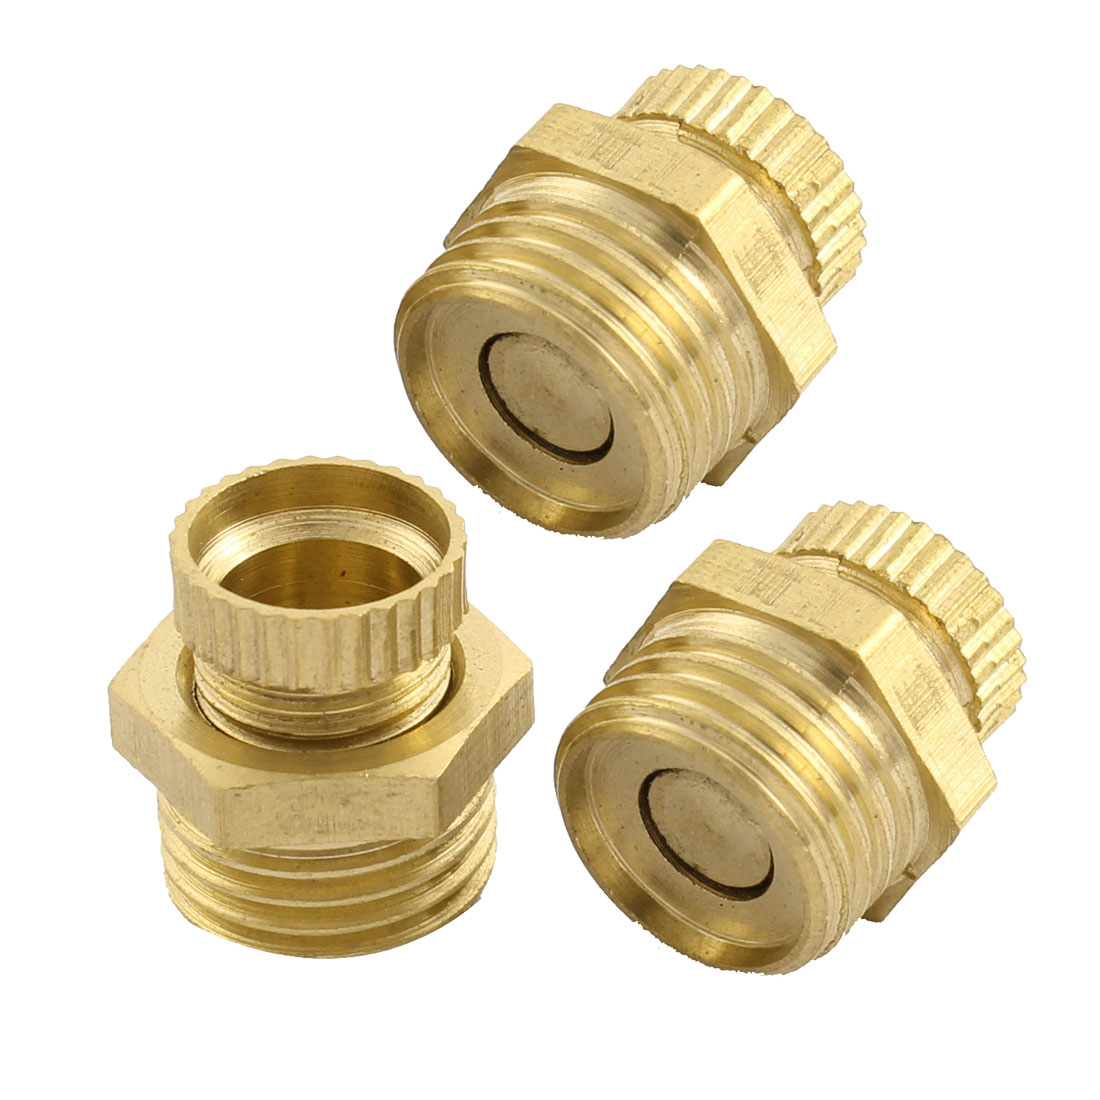 Air Compressor Part 13mm Male Thread Dia Security Water Drain Valve Brass Tone 3 Pcs